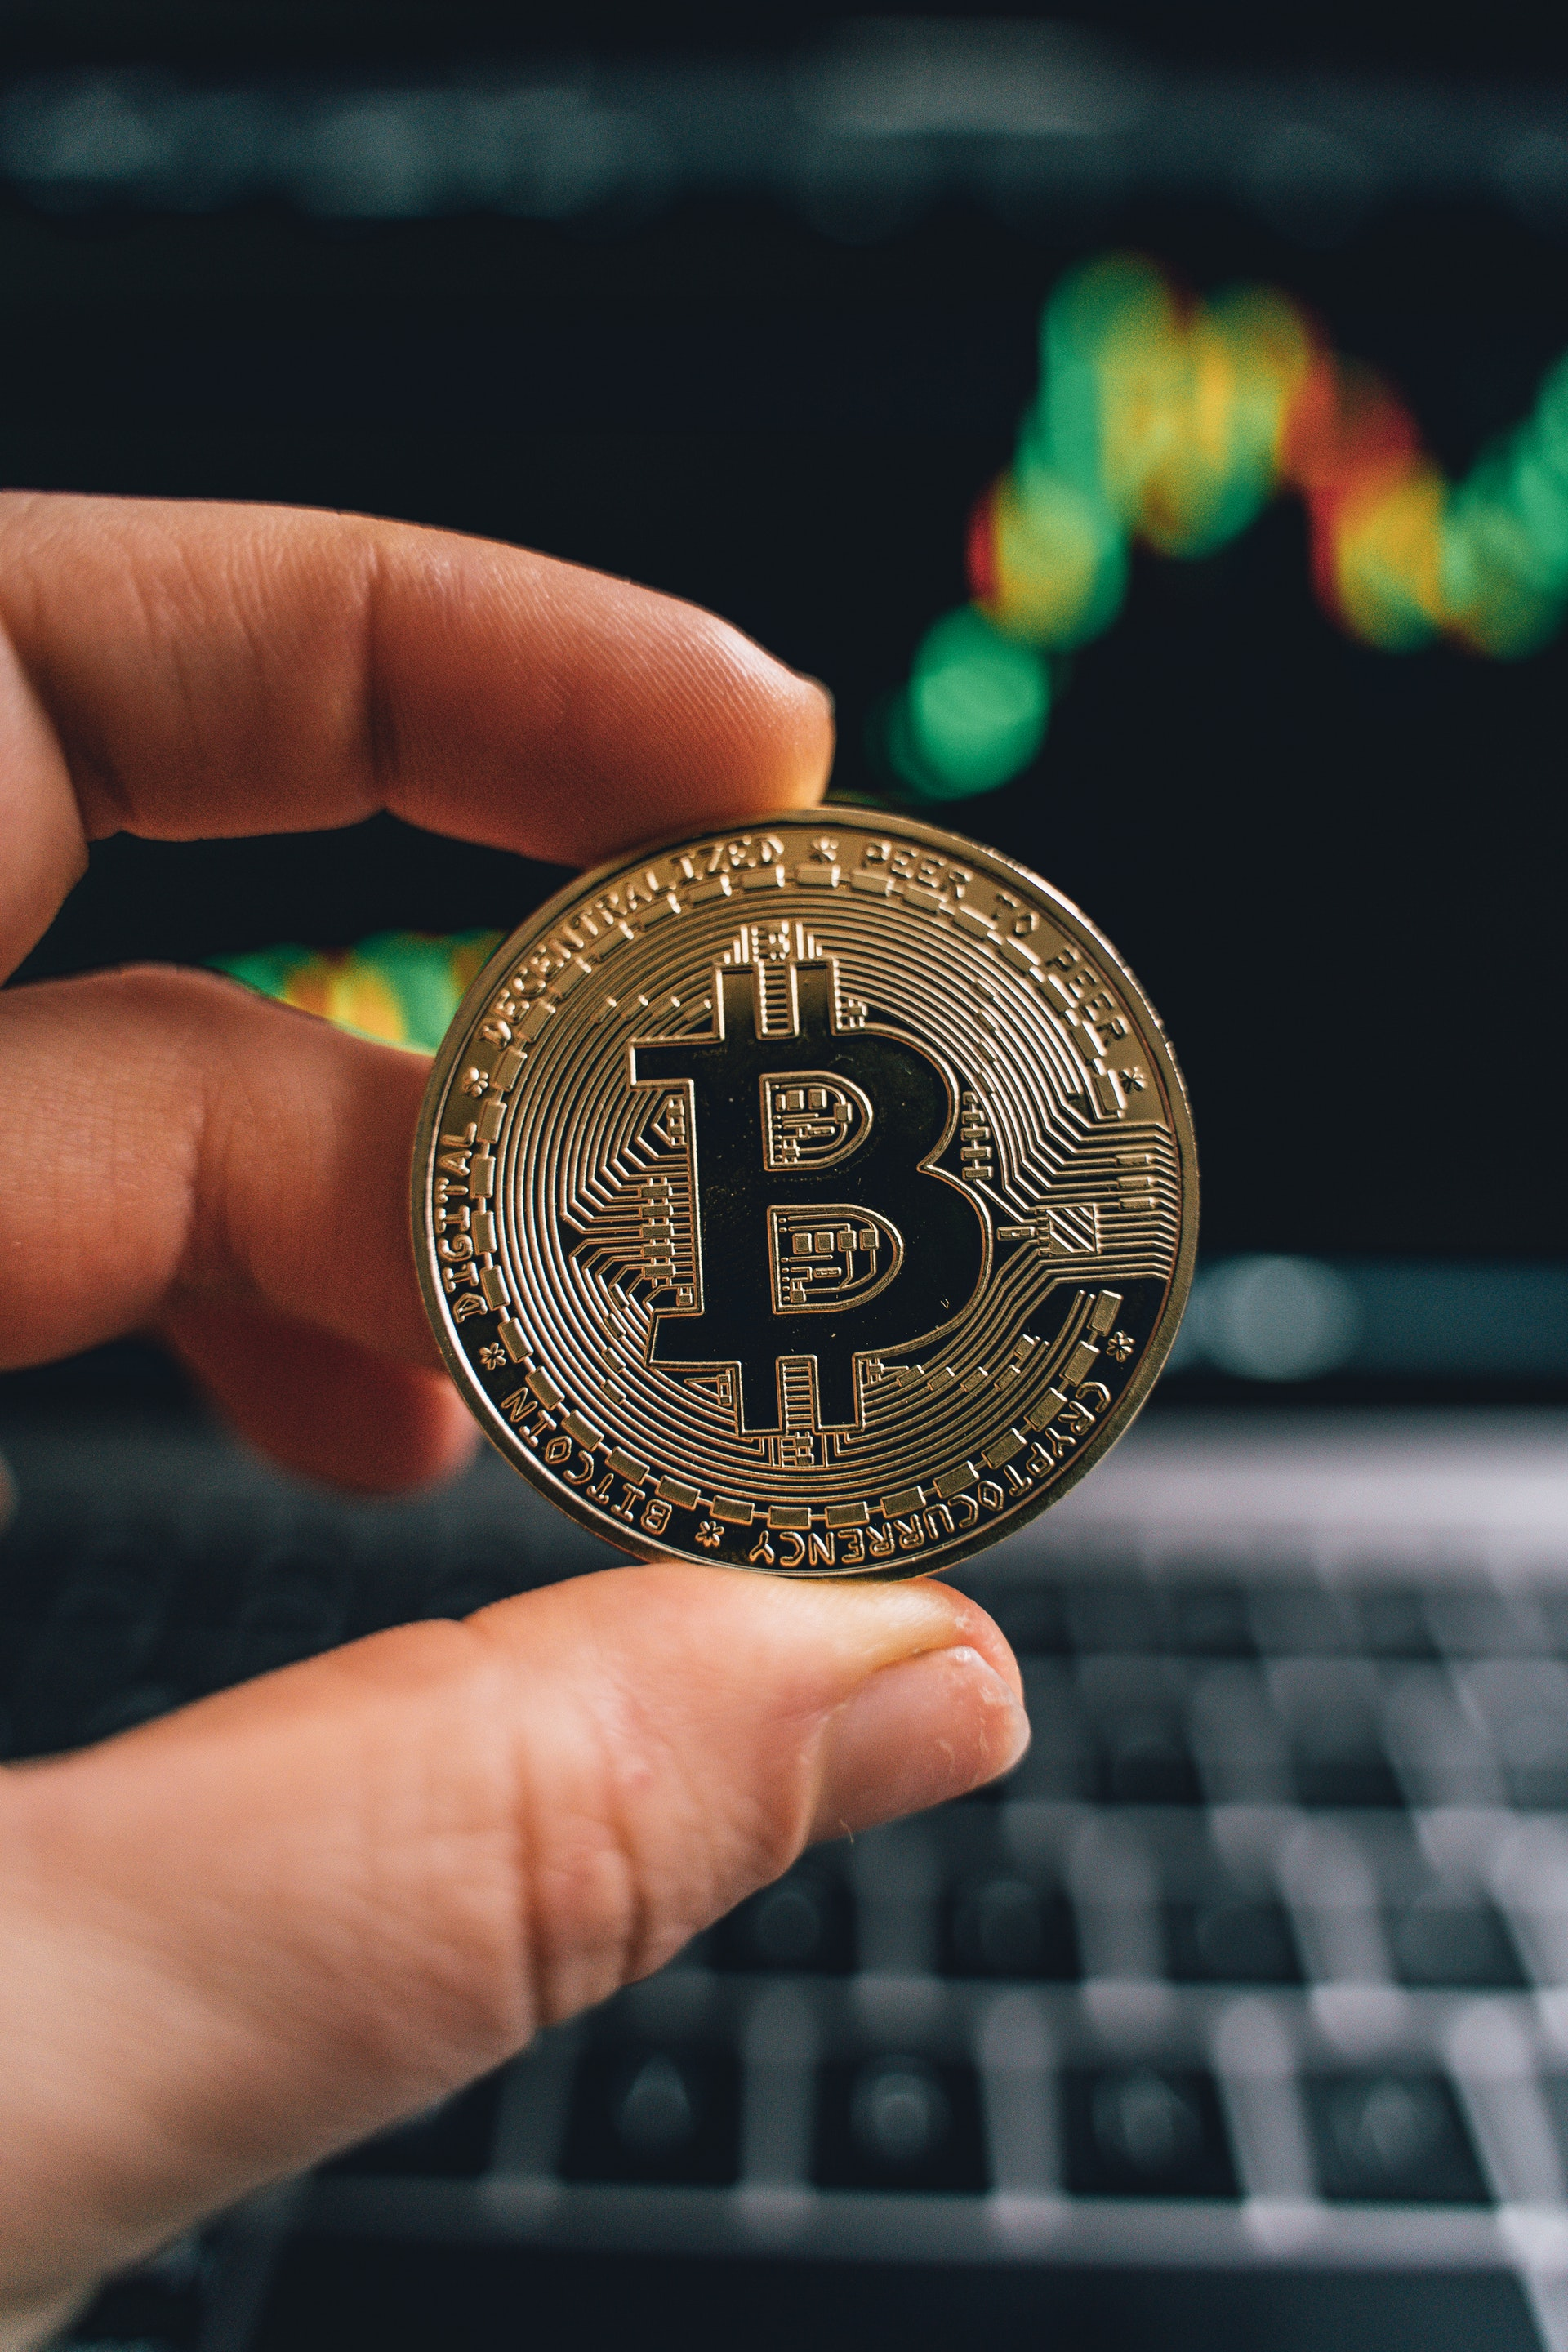 Bitcoin Crowd FUD 'Begin to Take Hold', Signalling Potential Buying Opportunity: Santiment